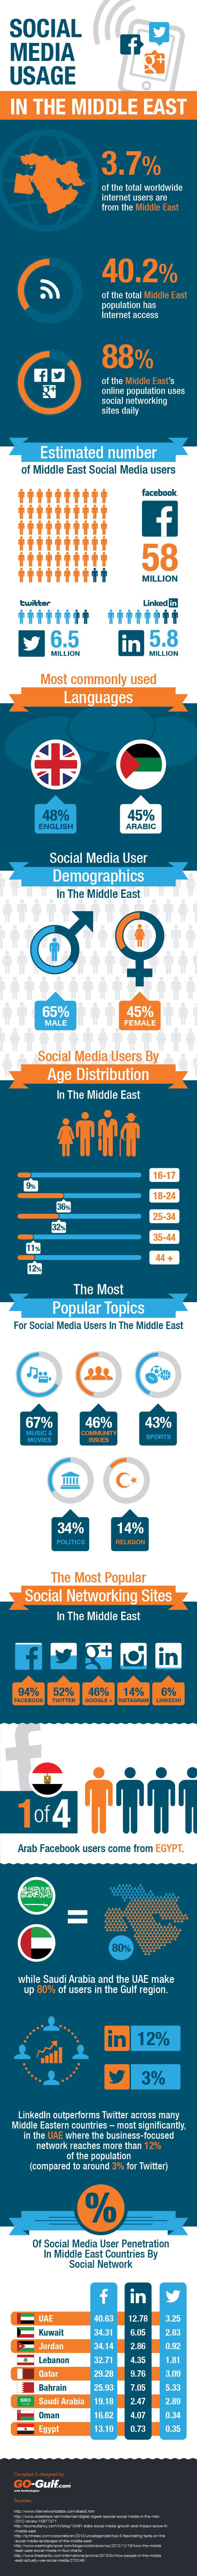 If you're tired of using international statistics for Arab audience, then you'll appreciate this infographic. - http://www.dm-3.com/statistics-of-mena-social-media-users/#sthash.GQvqaMdA.dpuf